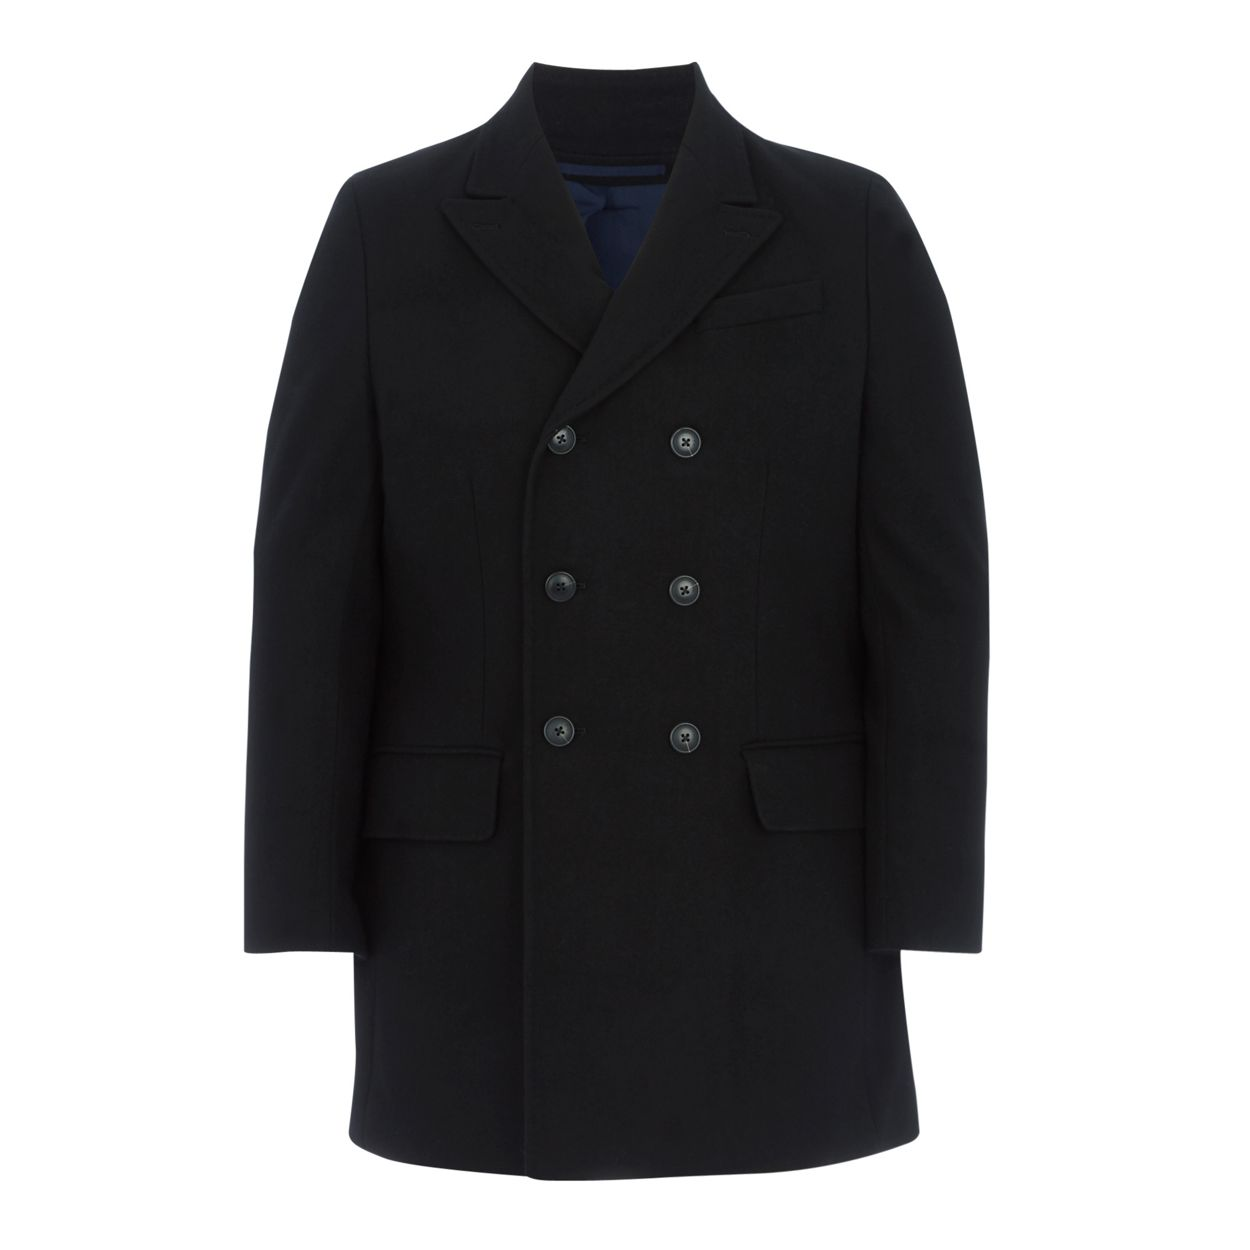 f00b8721192bc Black double-breasted wool rich coat by J... — Thread